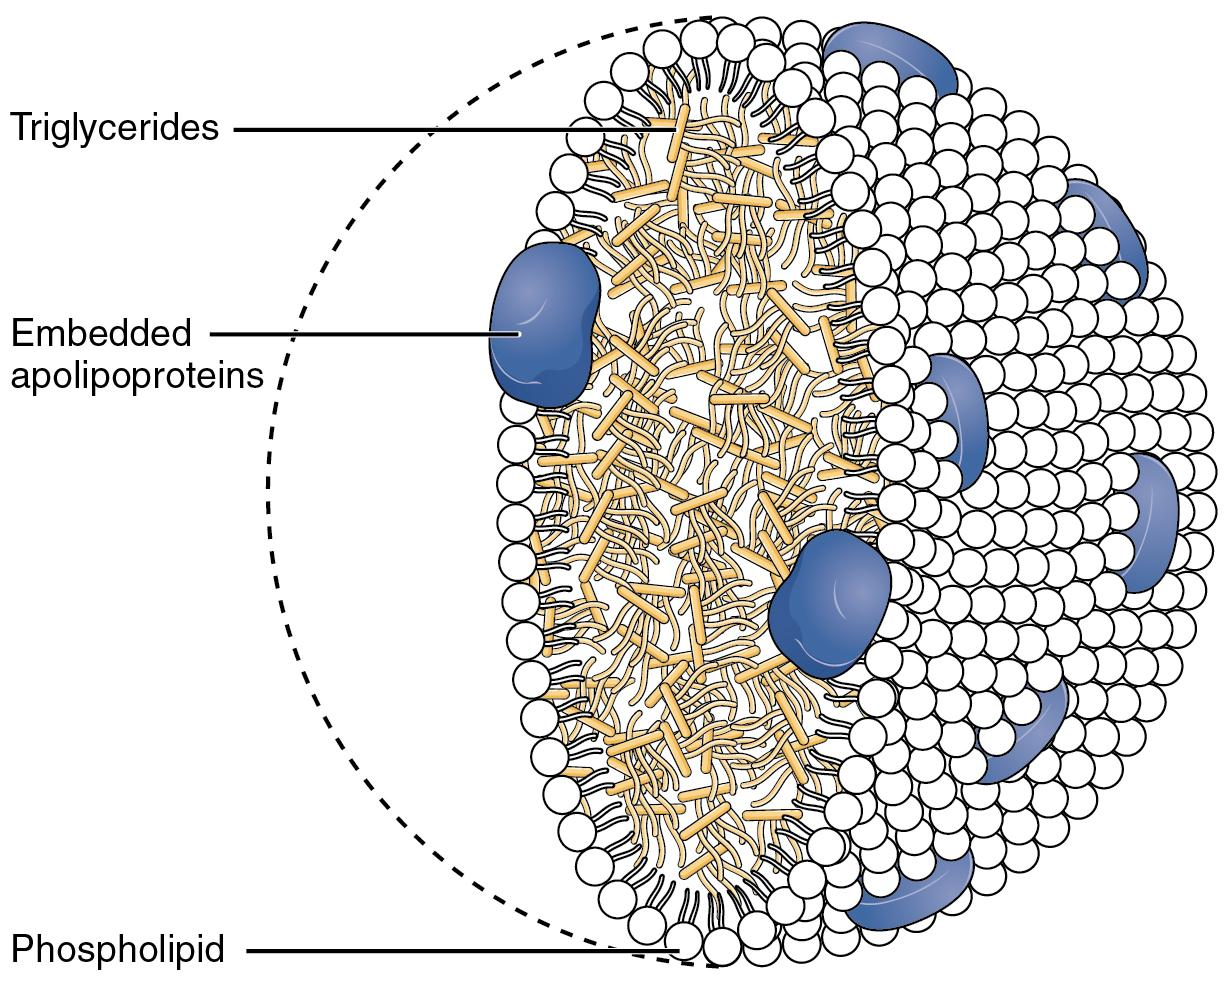 Cartoon diagram showing the structure of a chylomicron. The interior is stuffed with triglycerides, shown in light yellow. The exterior is made up of phospholipids, shown in white and oriented with their fatty tails towards the inside of the chylomicron, and dotted with embedded apolipoproteins, shown in blue.